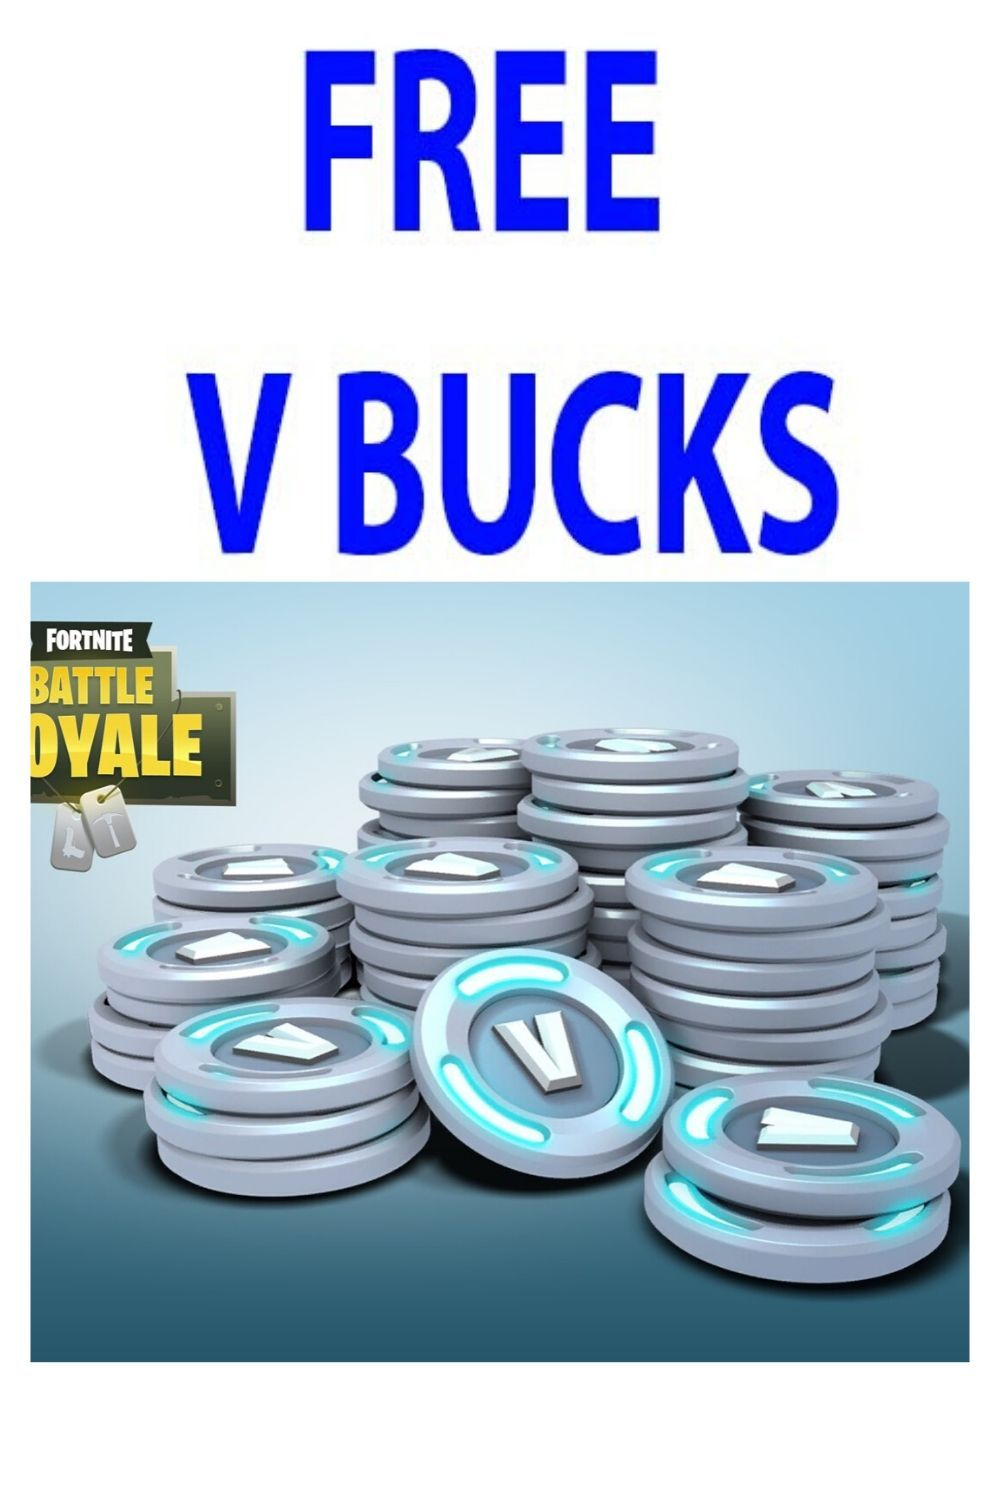 45+ Epic games account link ideas in 2021